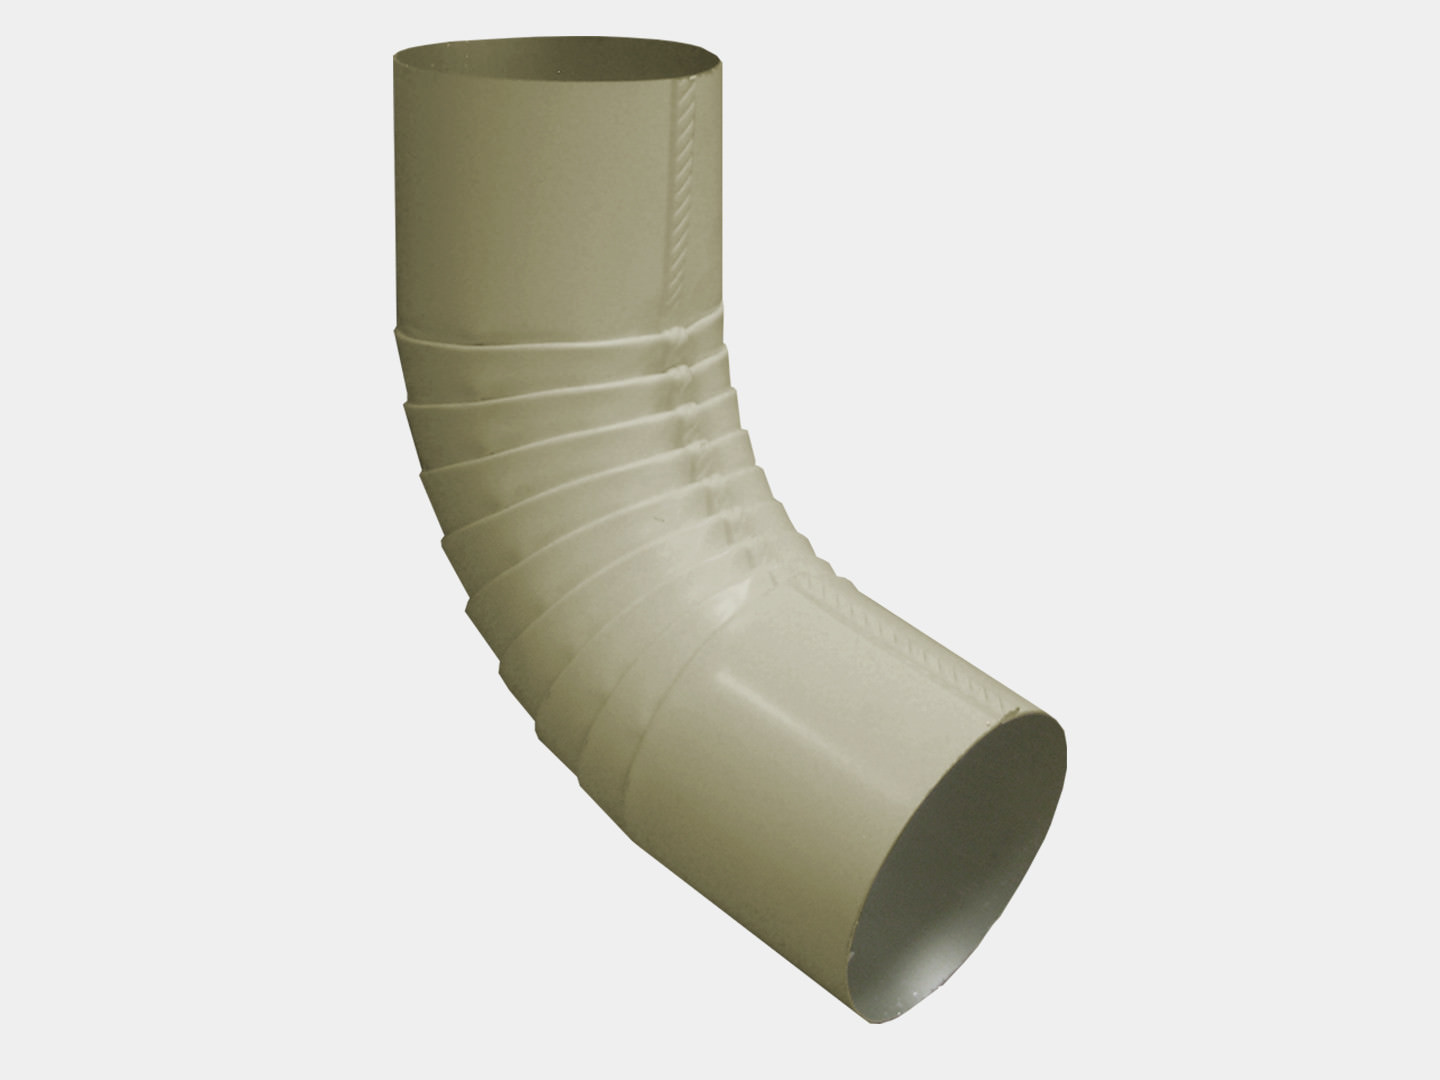 Plain round almond steel elbow for downspout